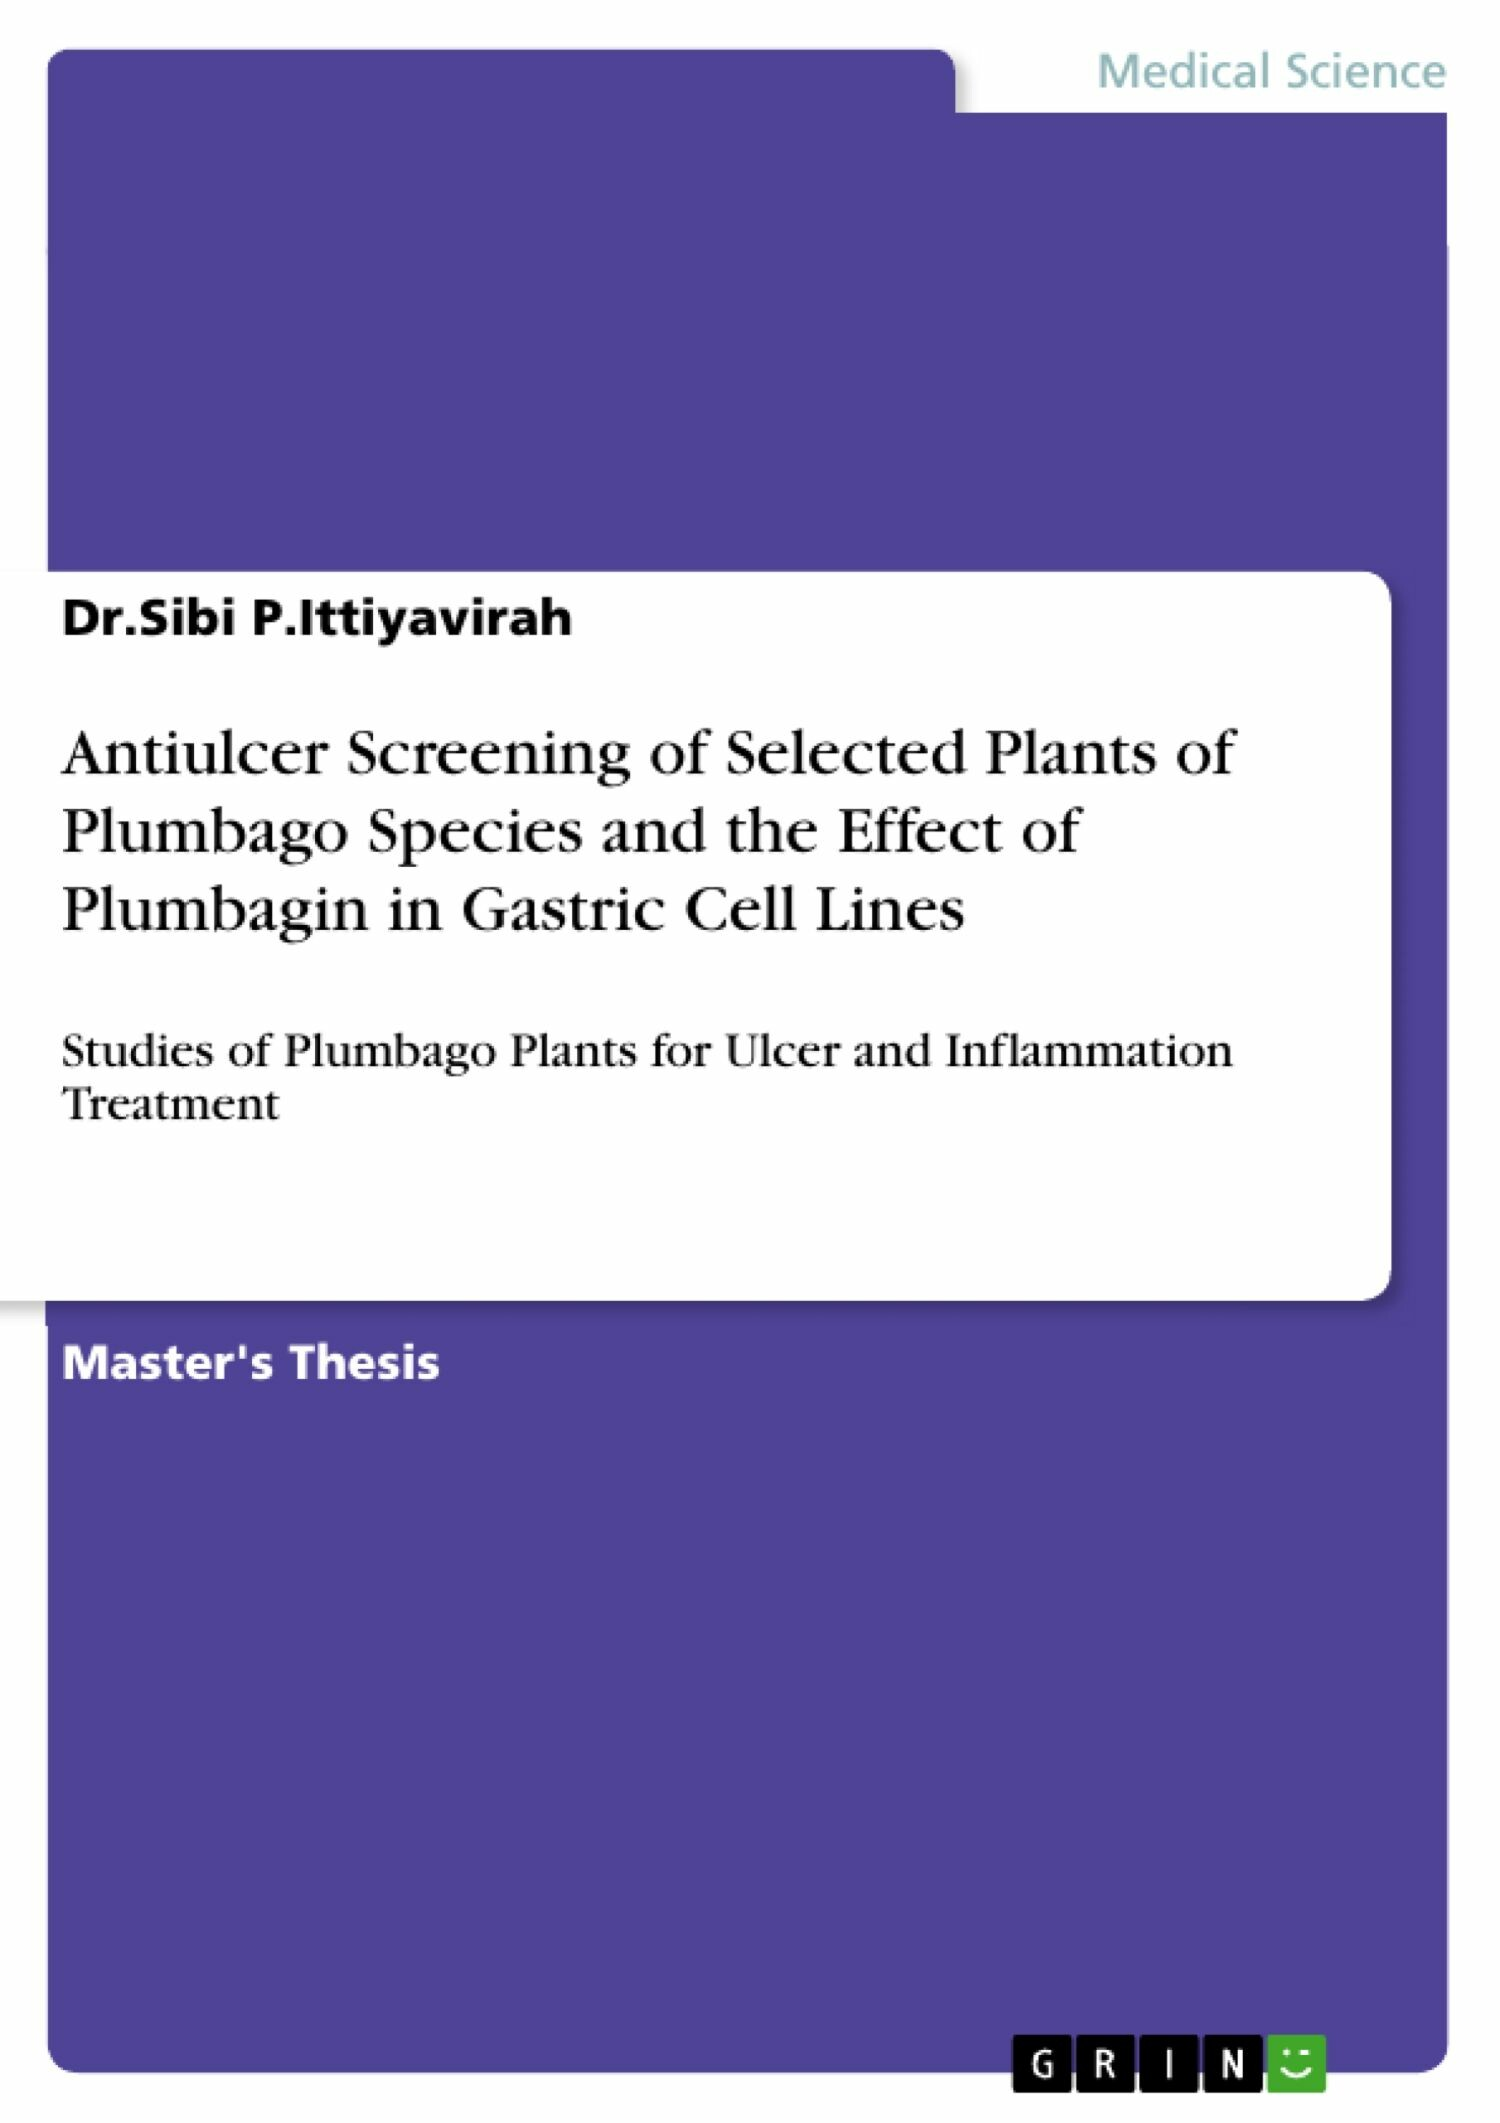 Antiulcer Screening of Selected Plants of Plumbago Species and the Effect of Plumbagin in Gastric Cell Lines